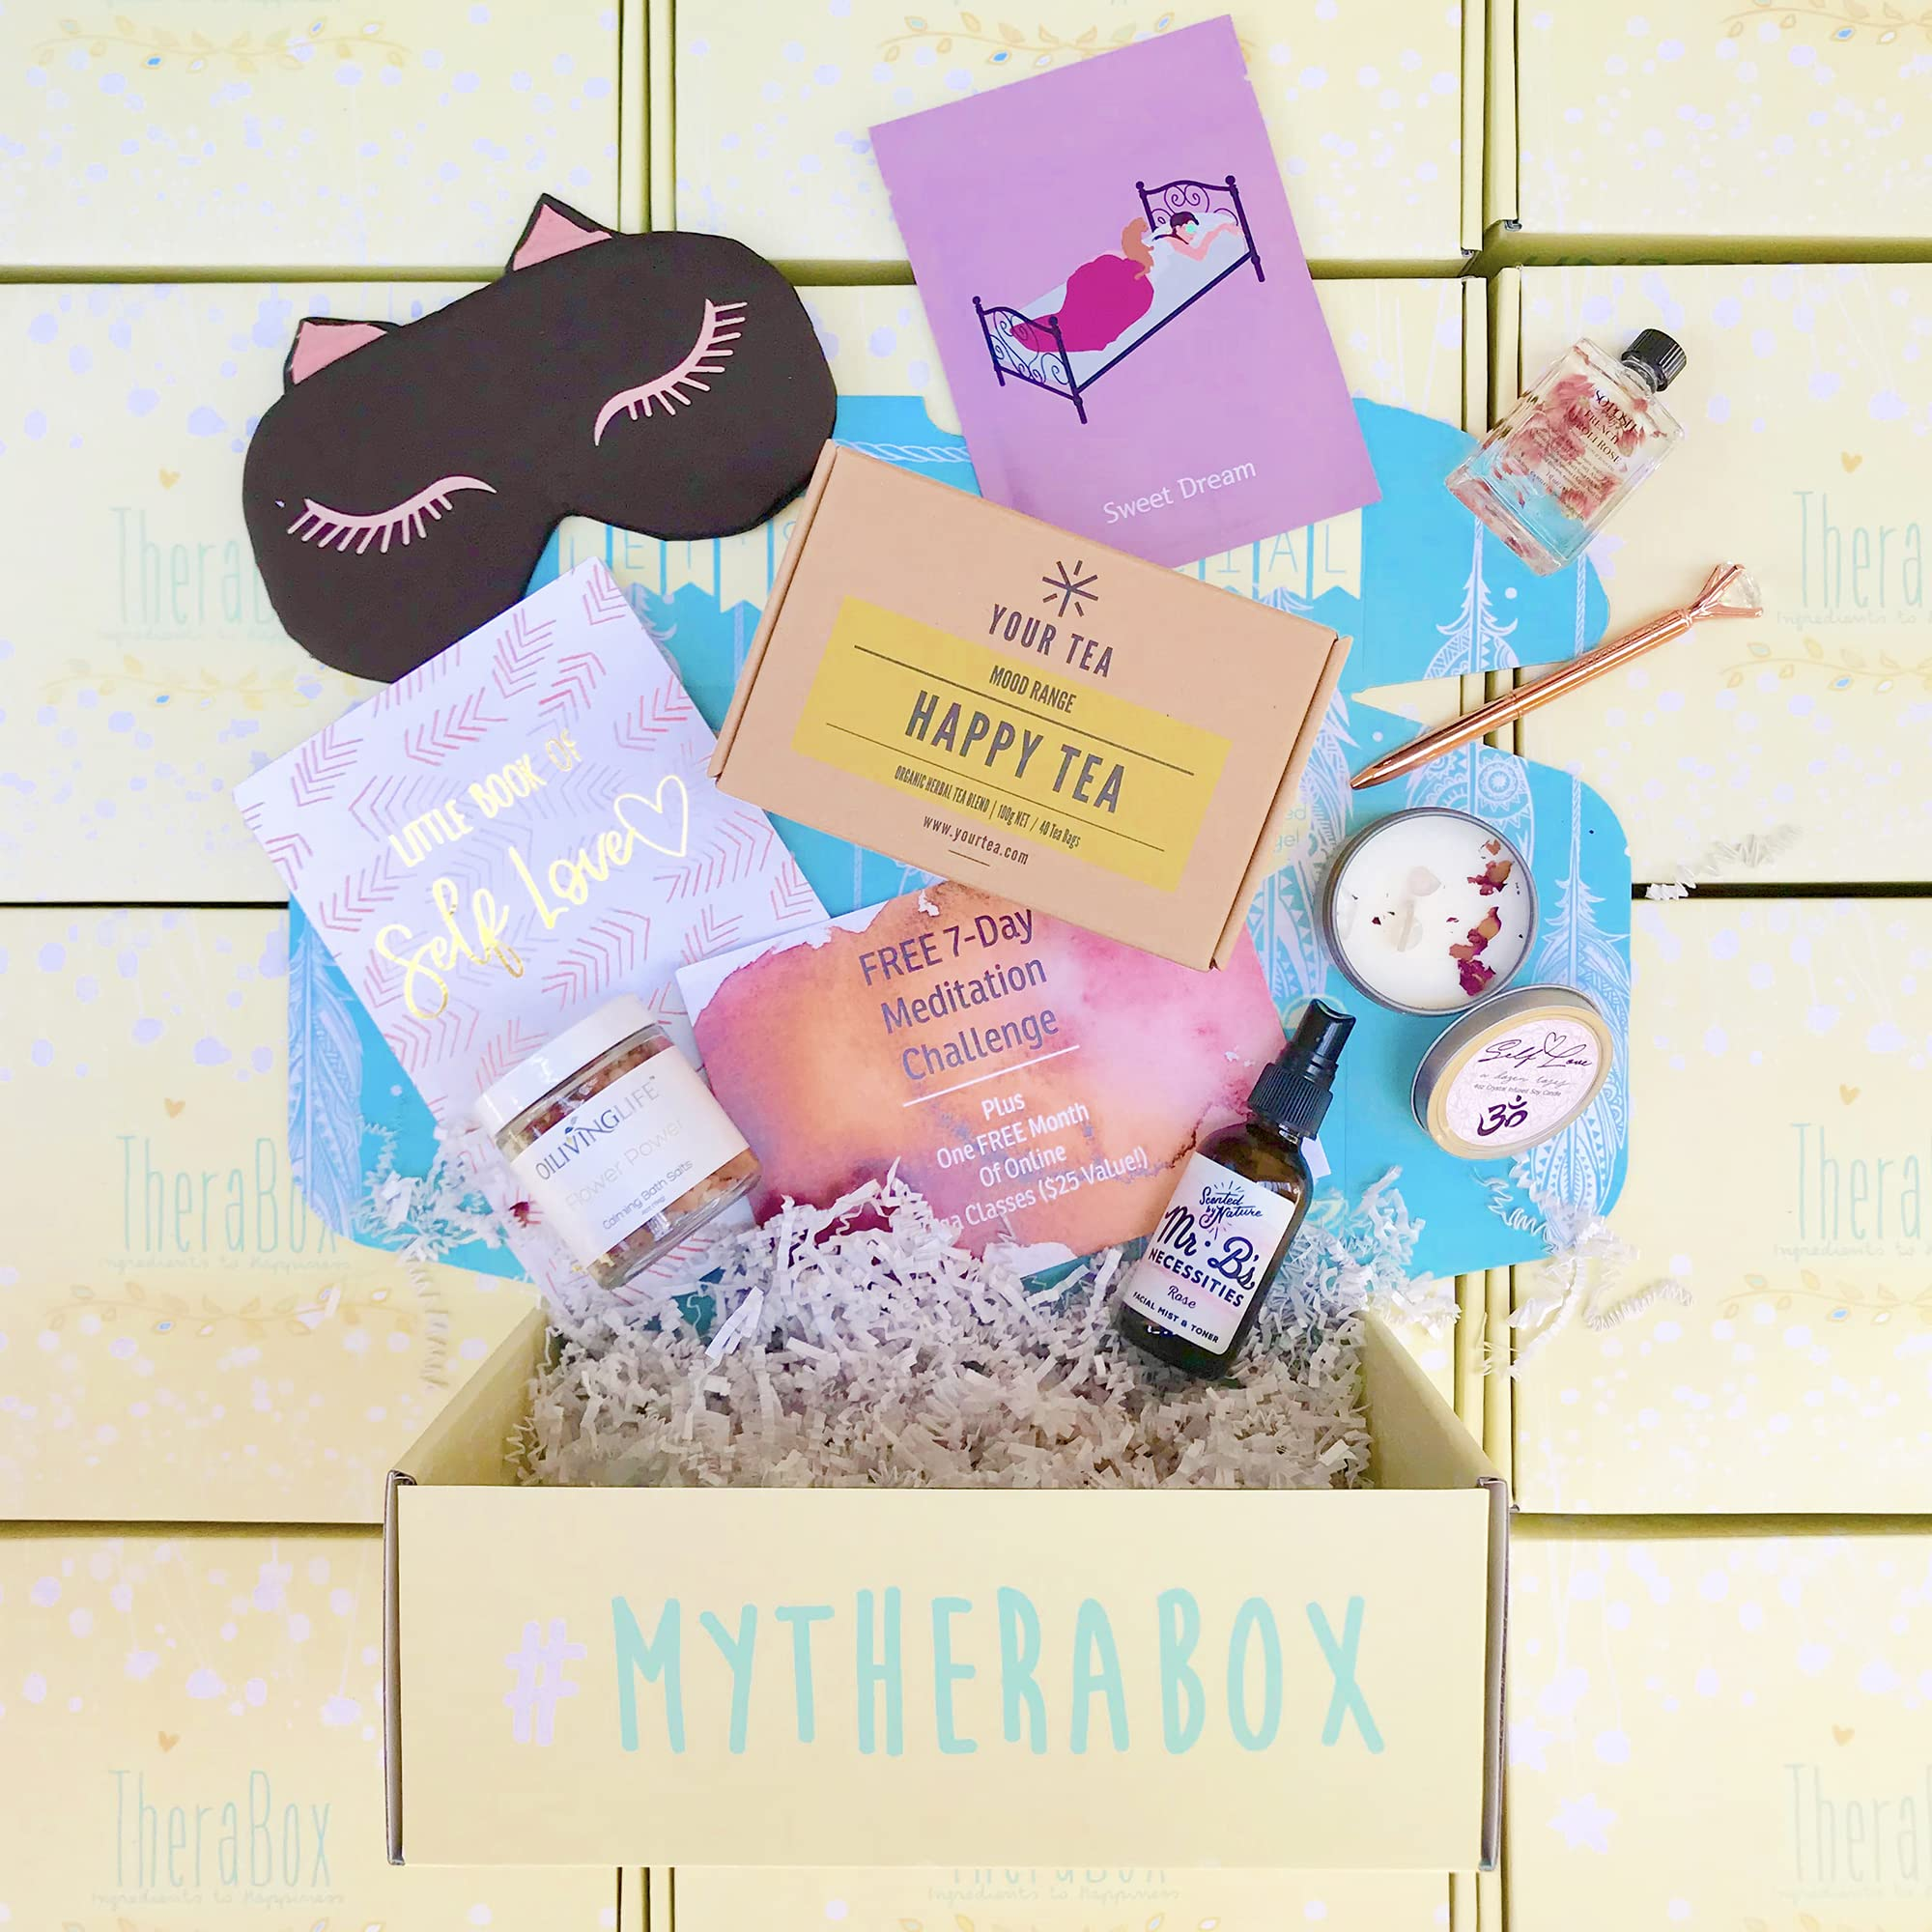 Therabox self care box